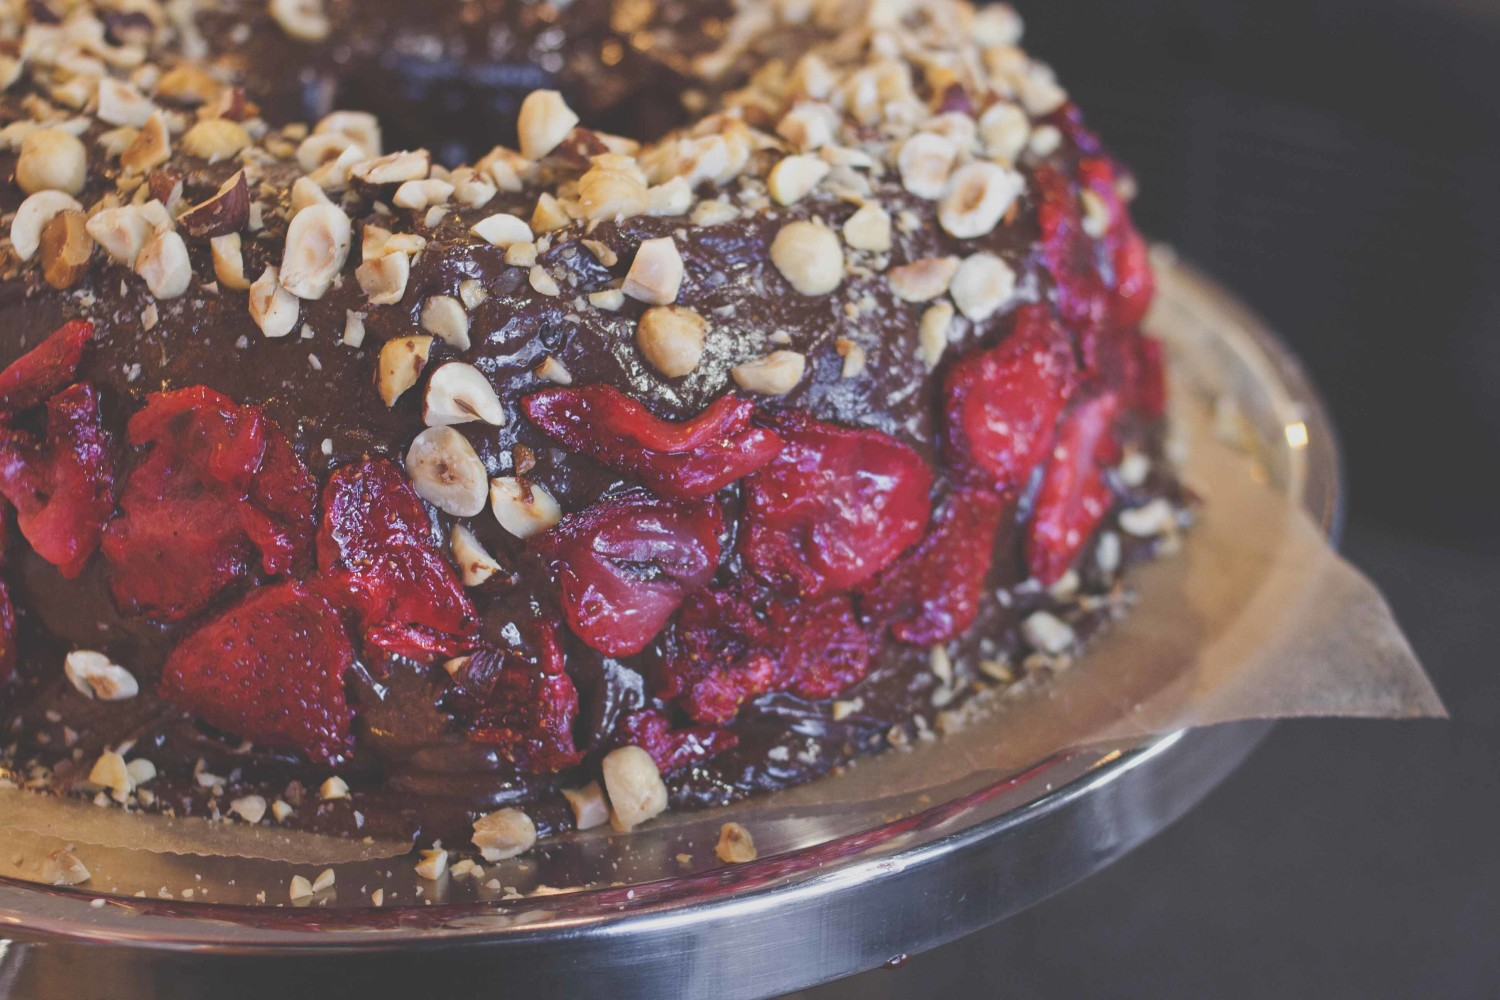 Roasted hazelnut + dark chocolate bourbon cake with sea salt roasted strawberries and dark choc ganache